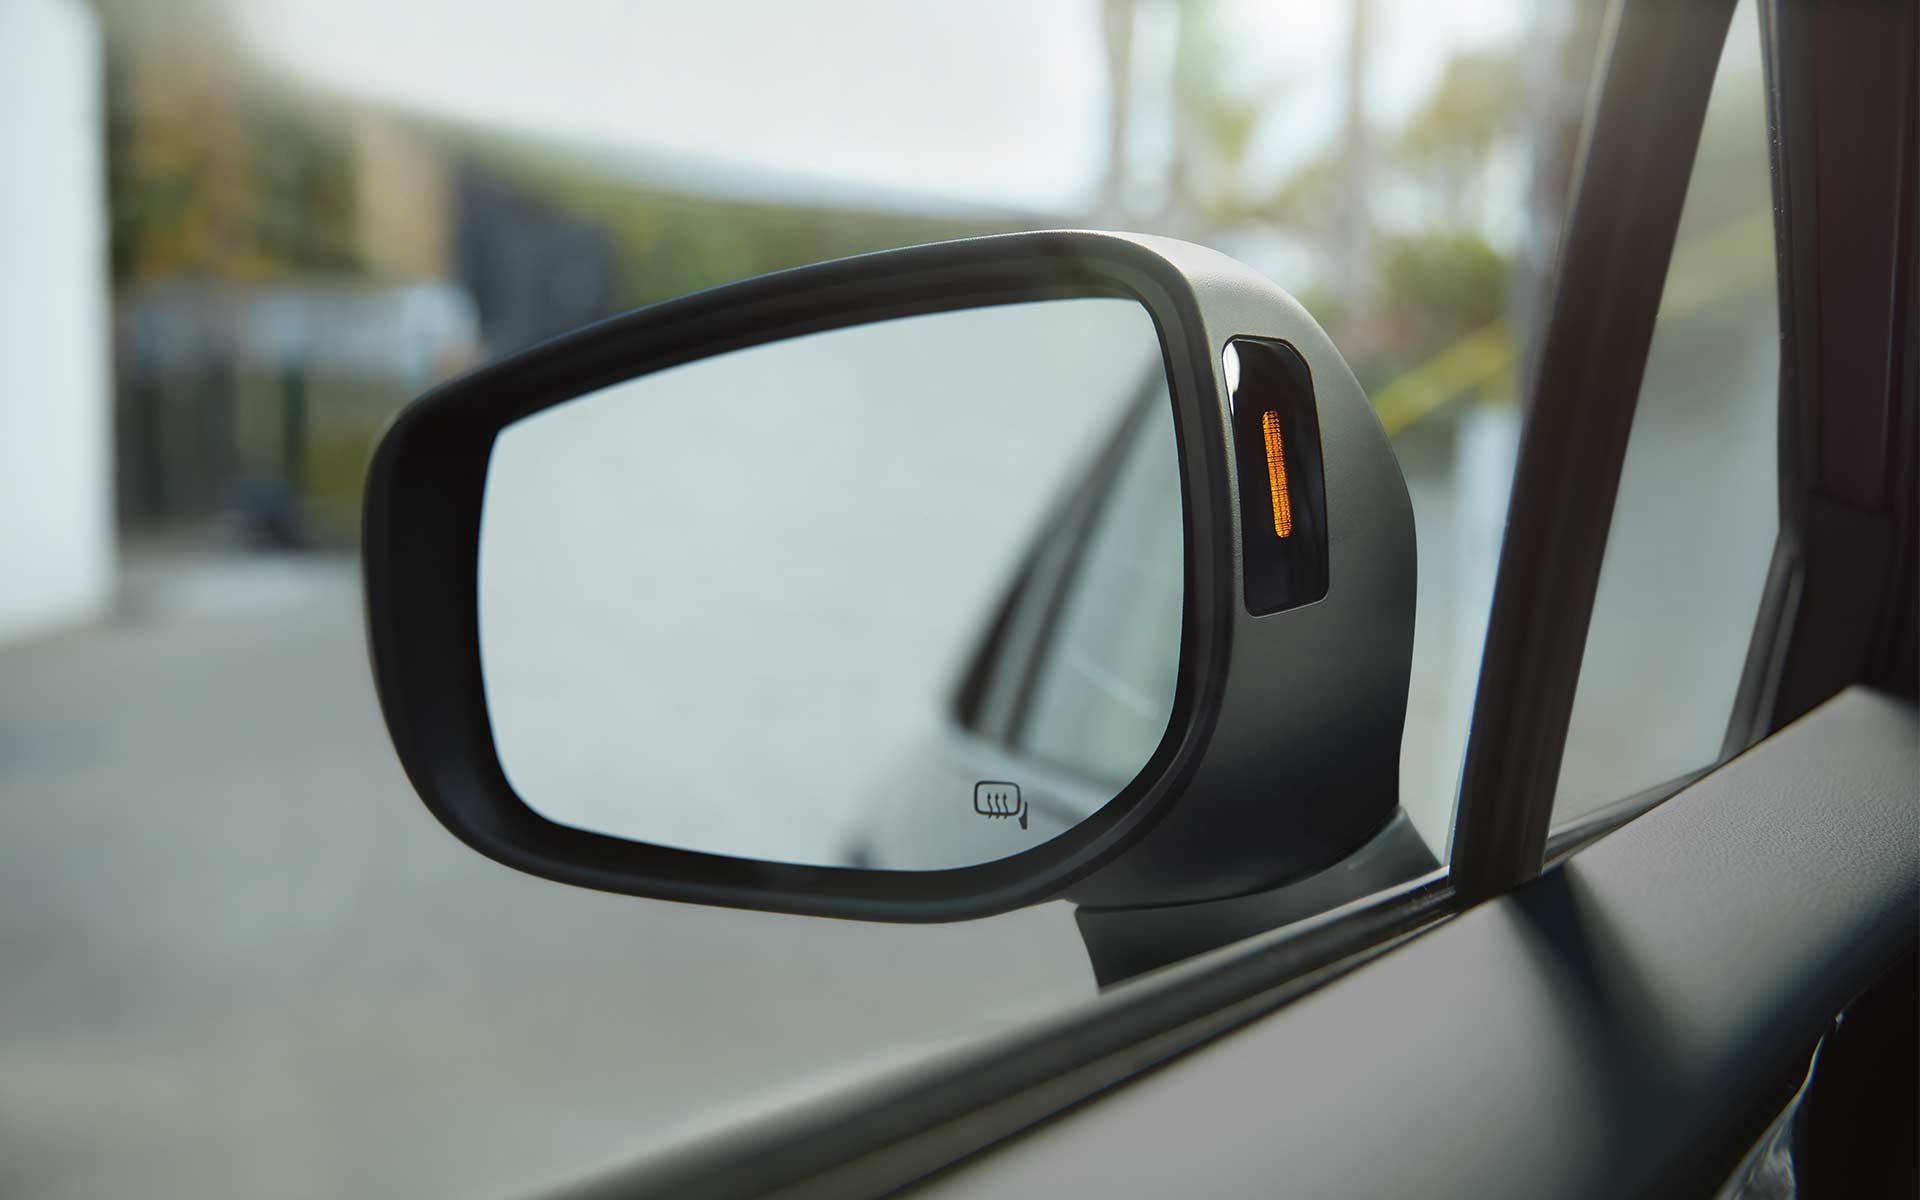 A close-up of a Blind-Spot Detection visual indicator in the side mirror of a 2020 Impreza.